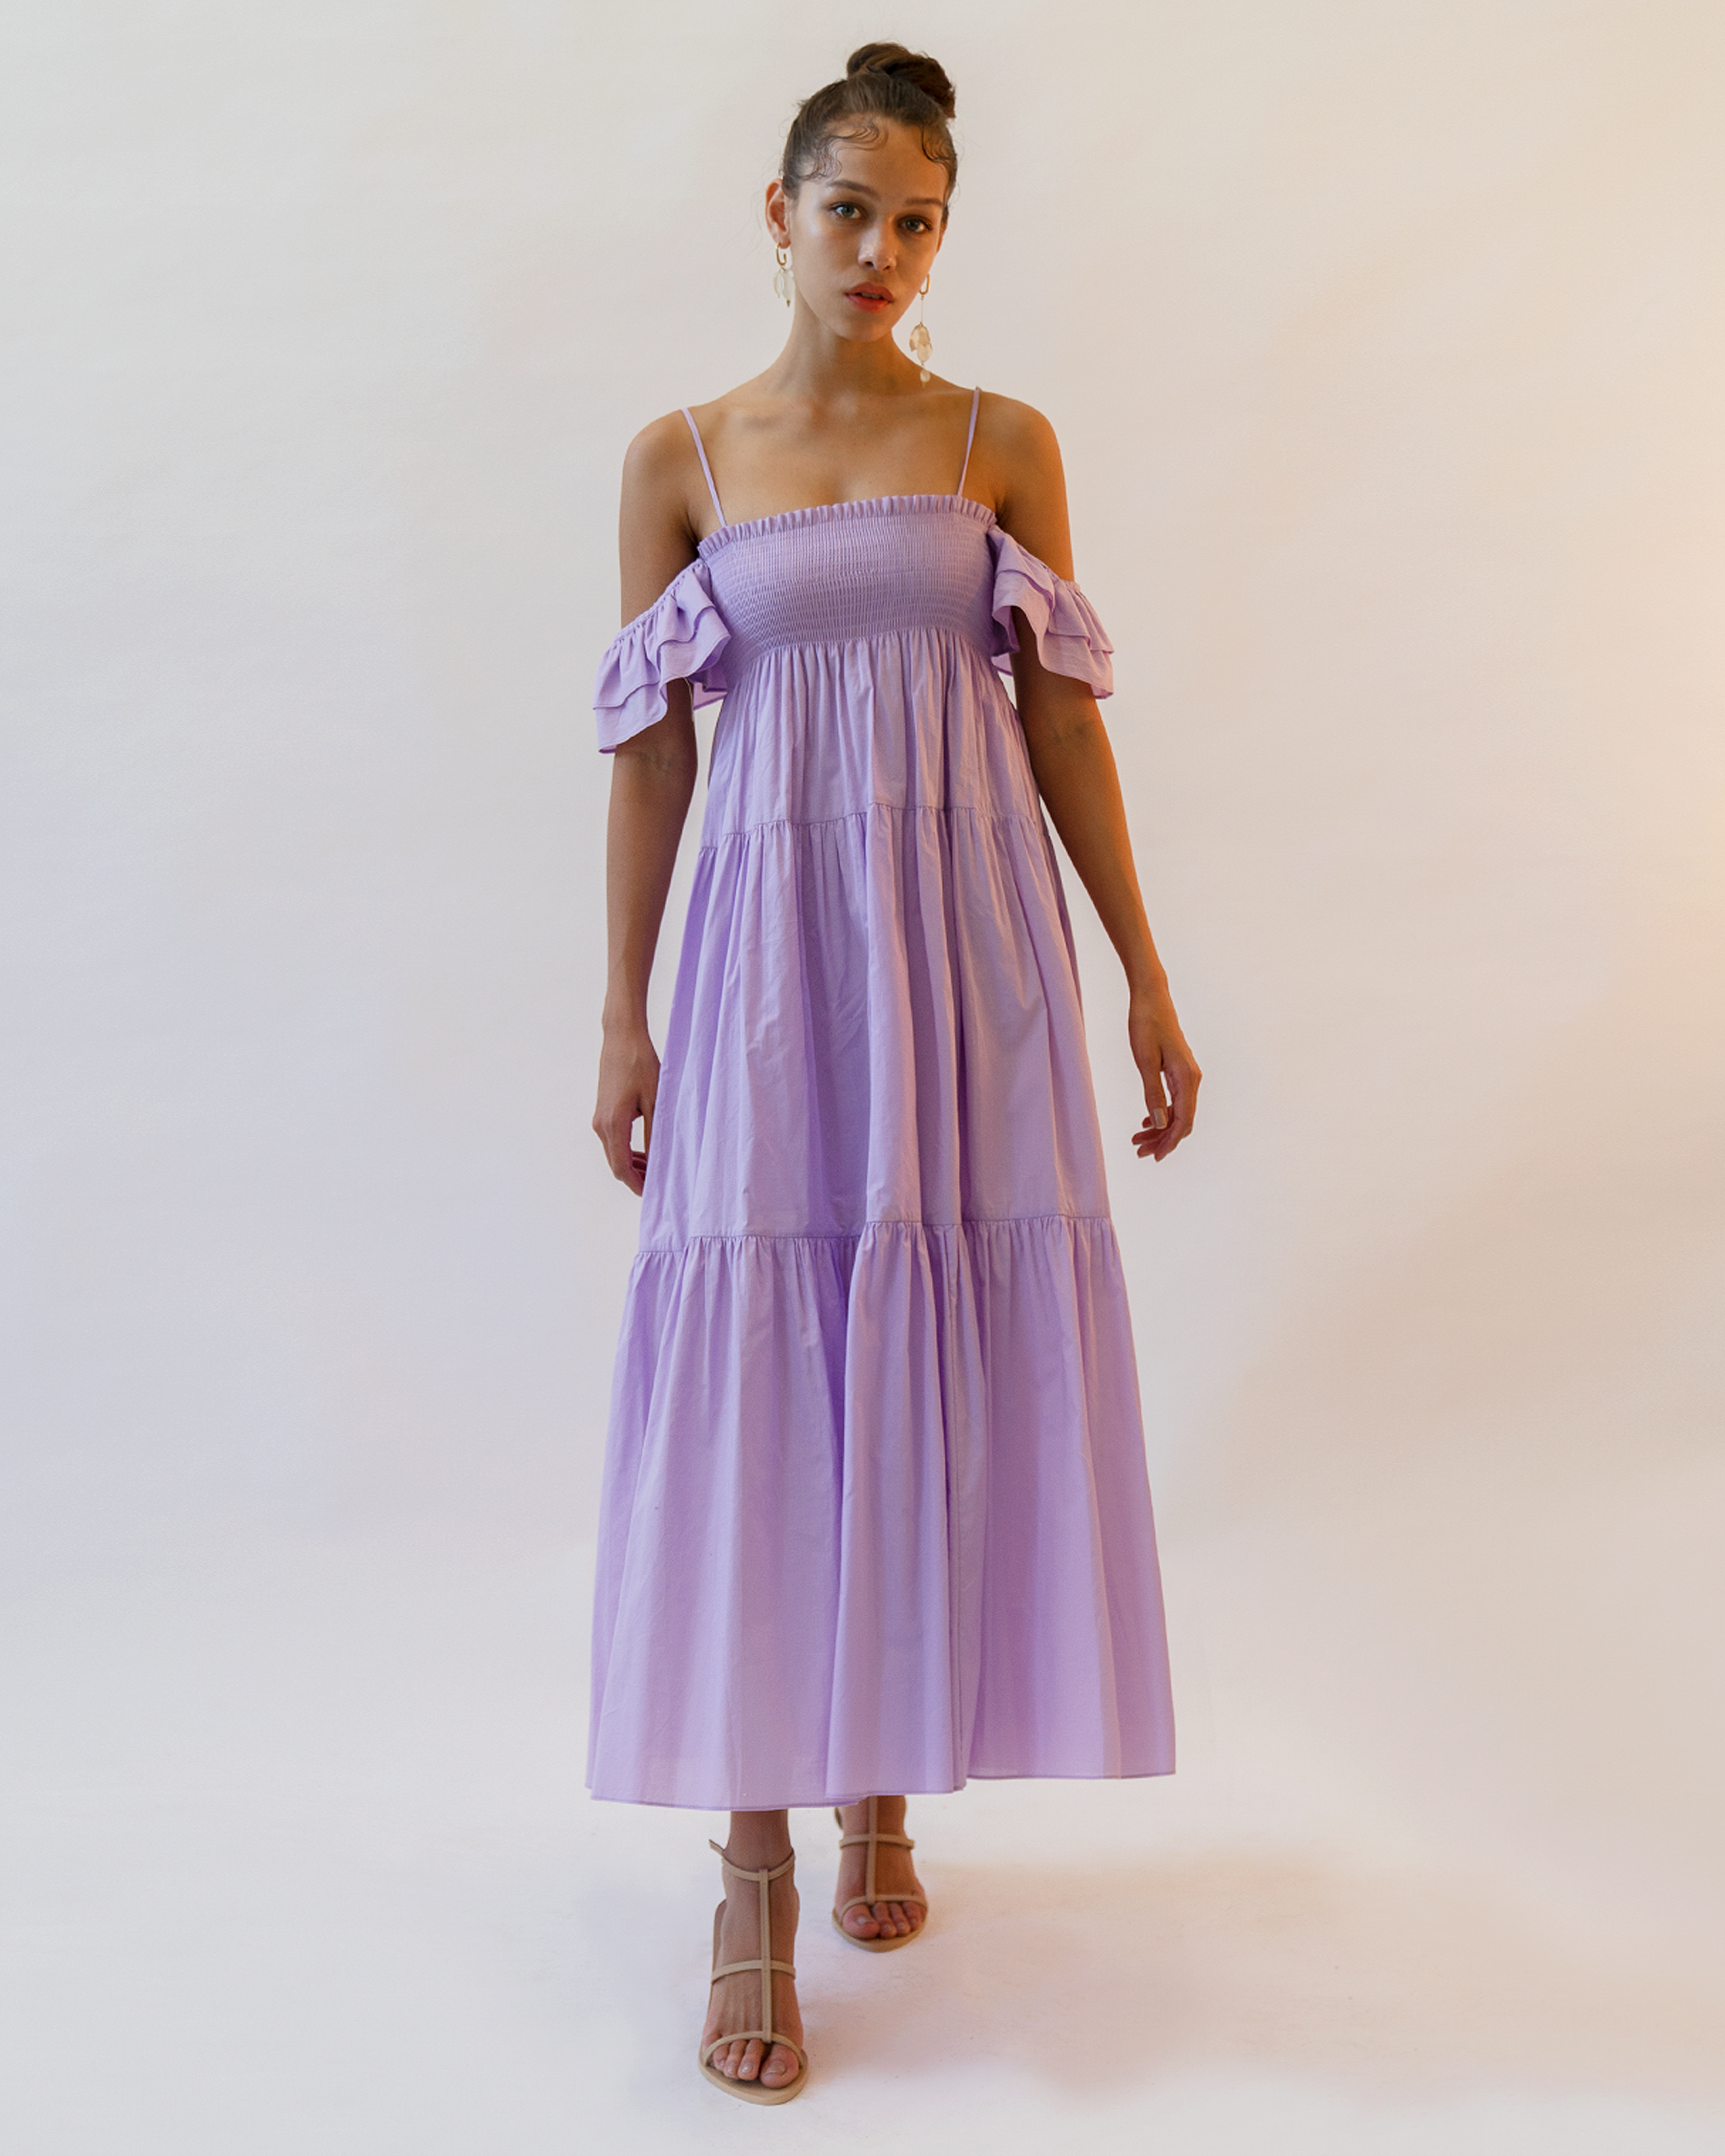 A woman is wearing violet off-the-shoulder dress.